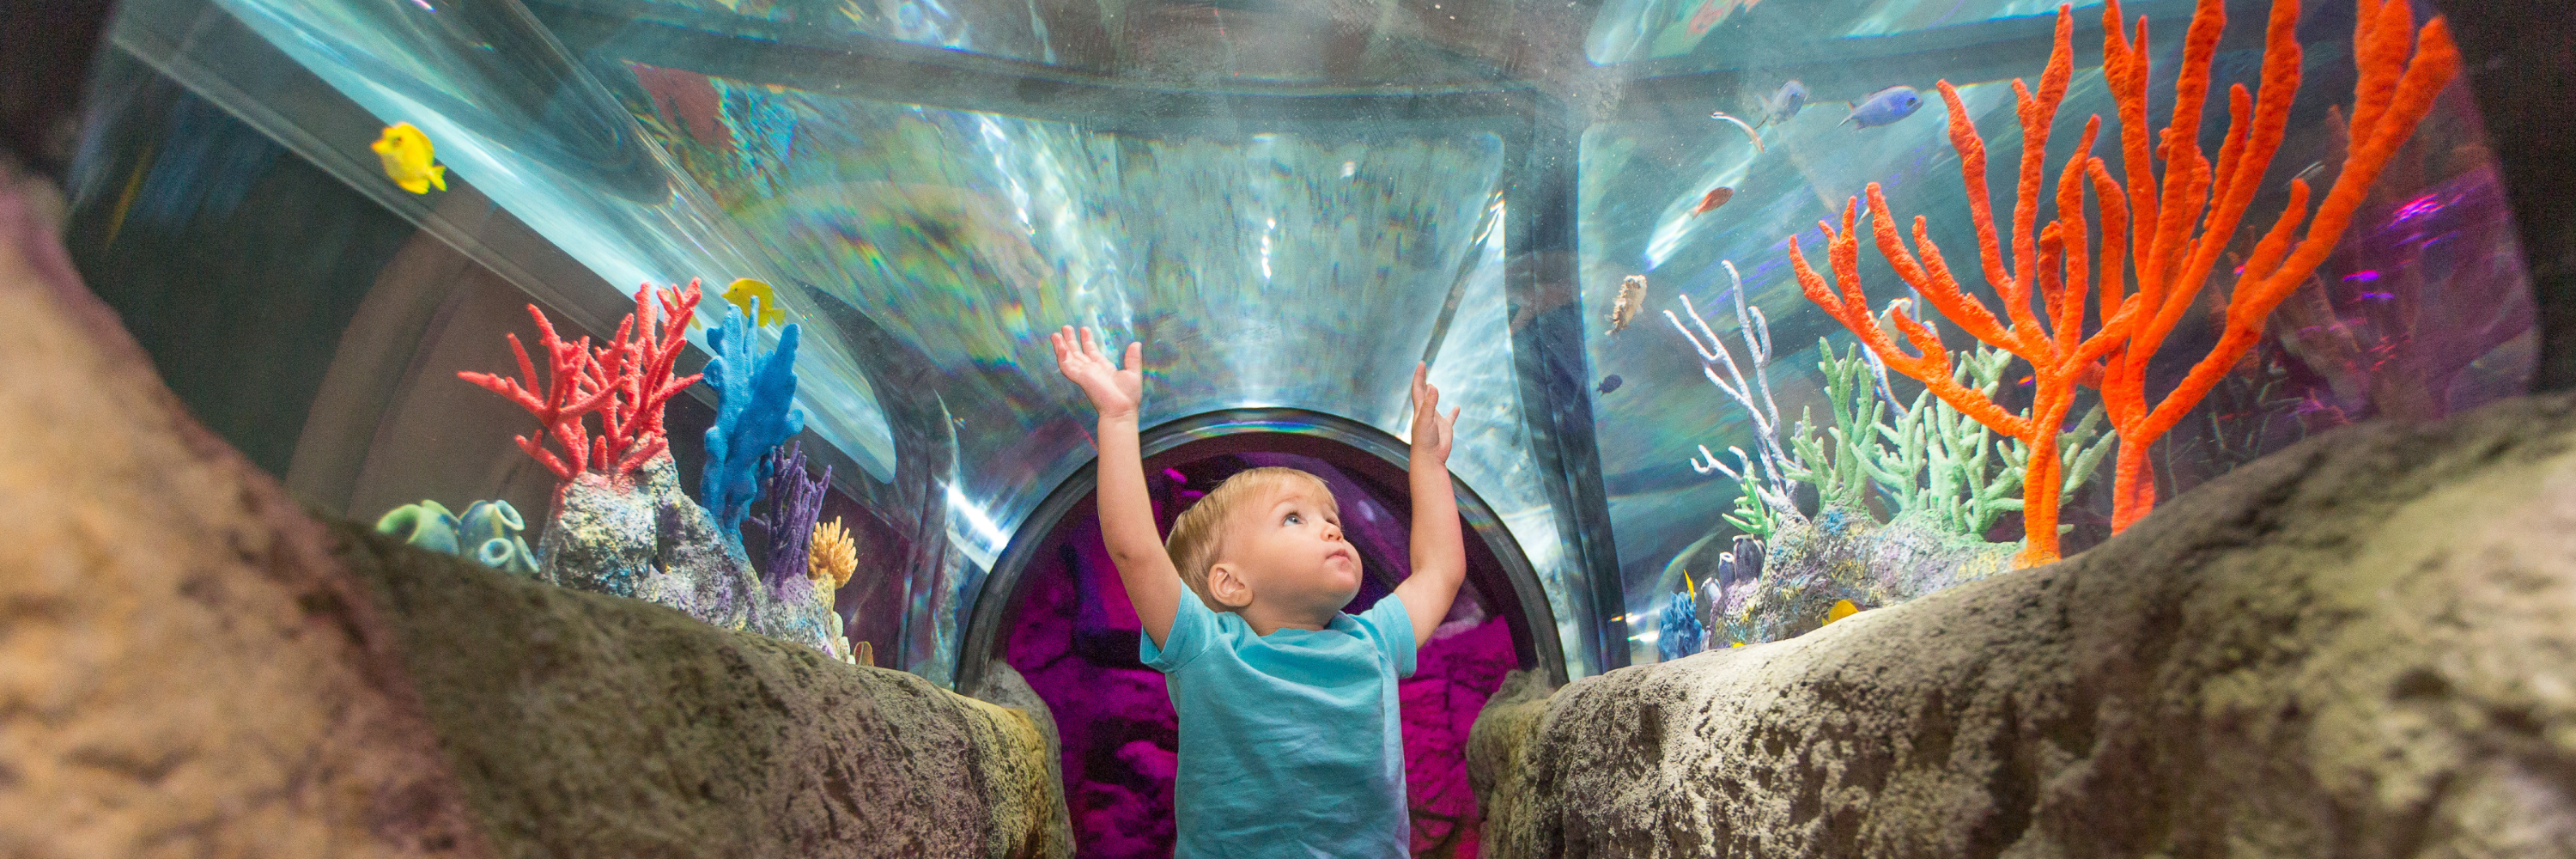 Child enjoying pop-up exhibit at SEA LIFE San Antonio